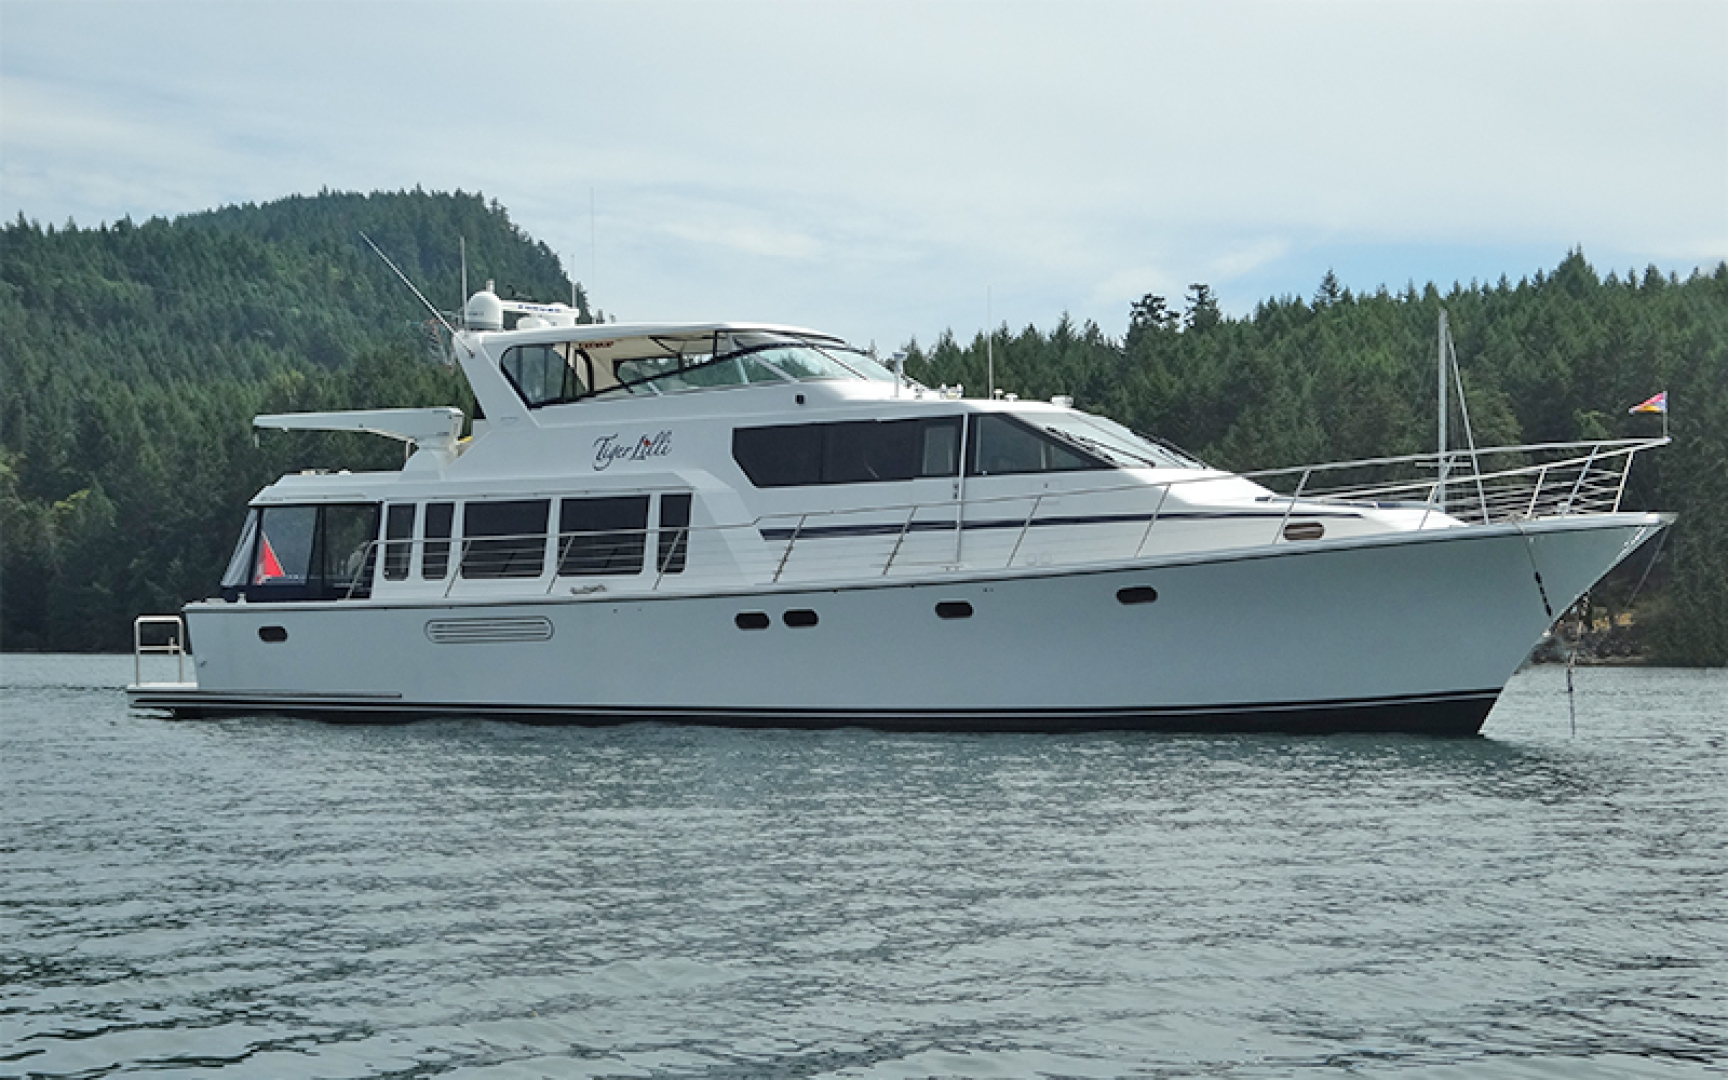 70' Pacific Mariner 2004 65 Diamond TIGER LILLI NAME RESERVED